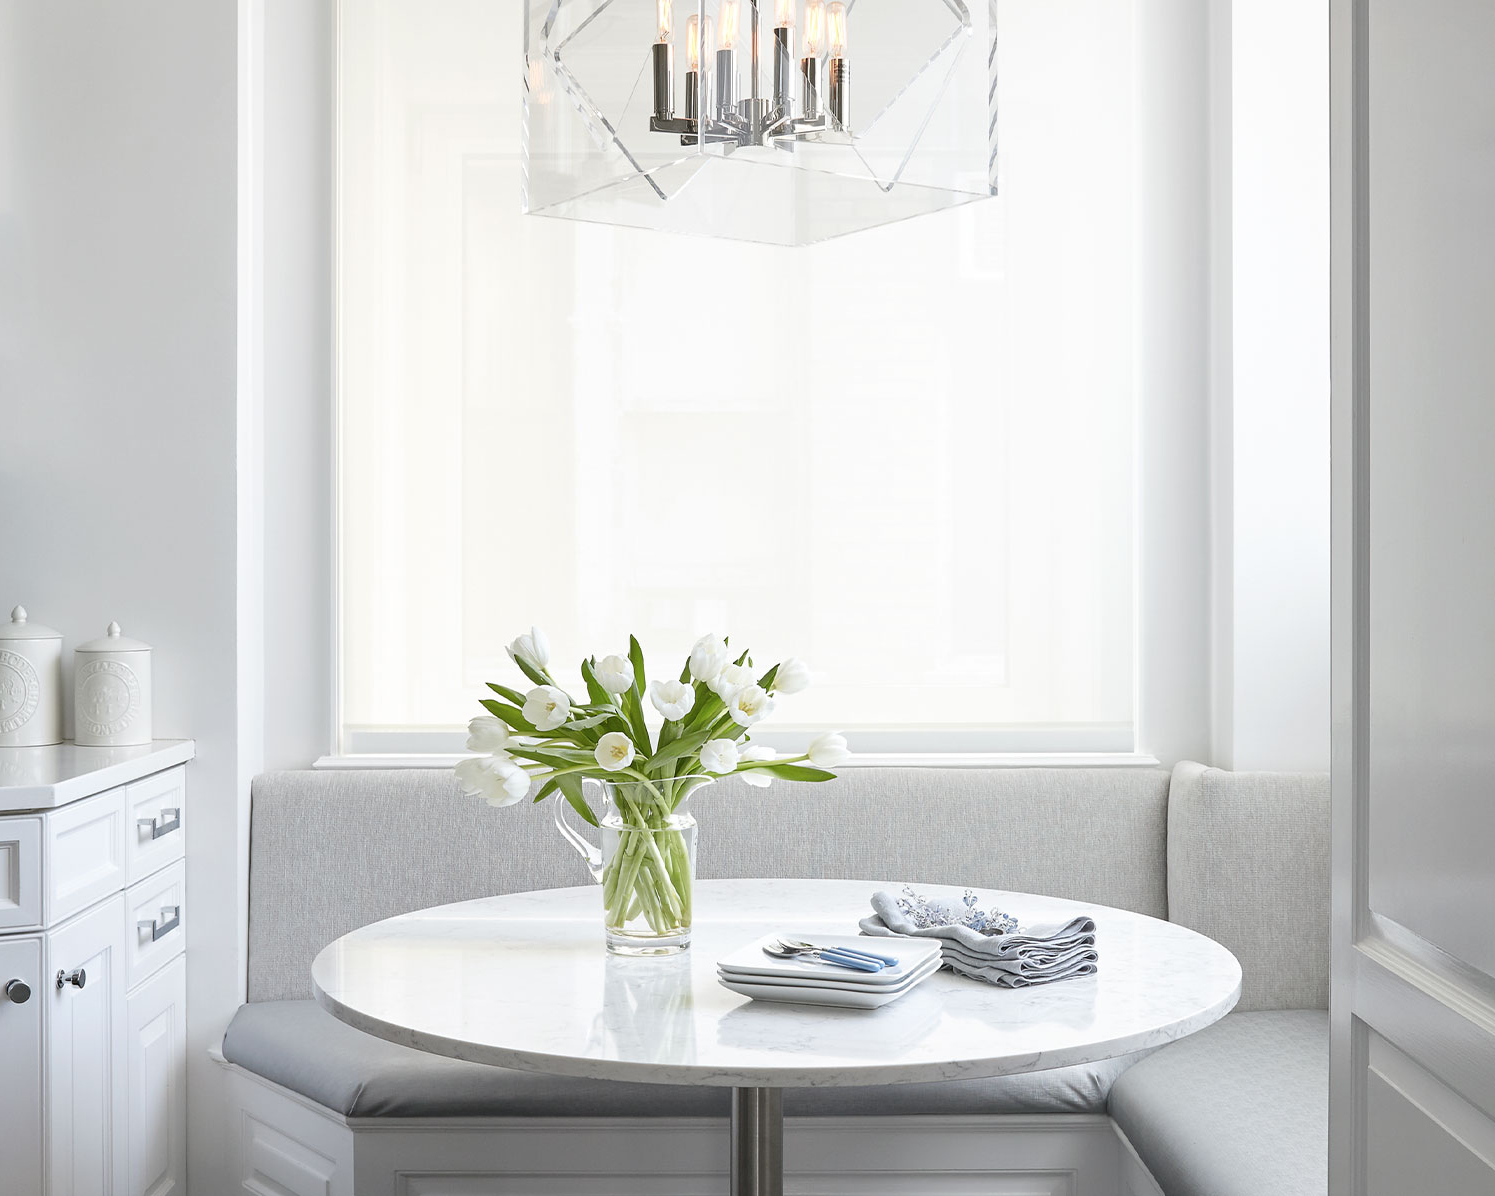 Eat-in breakfast nook, upholstered banquette seat and cube ottoman seating in a NYC interior design project